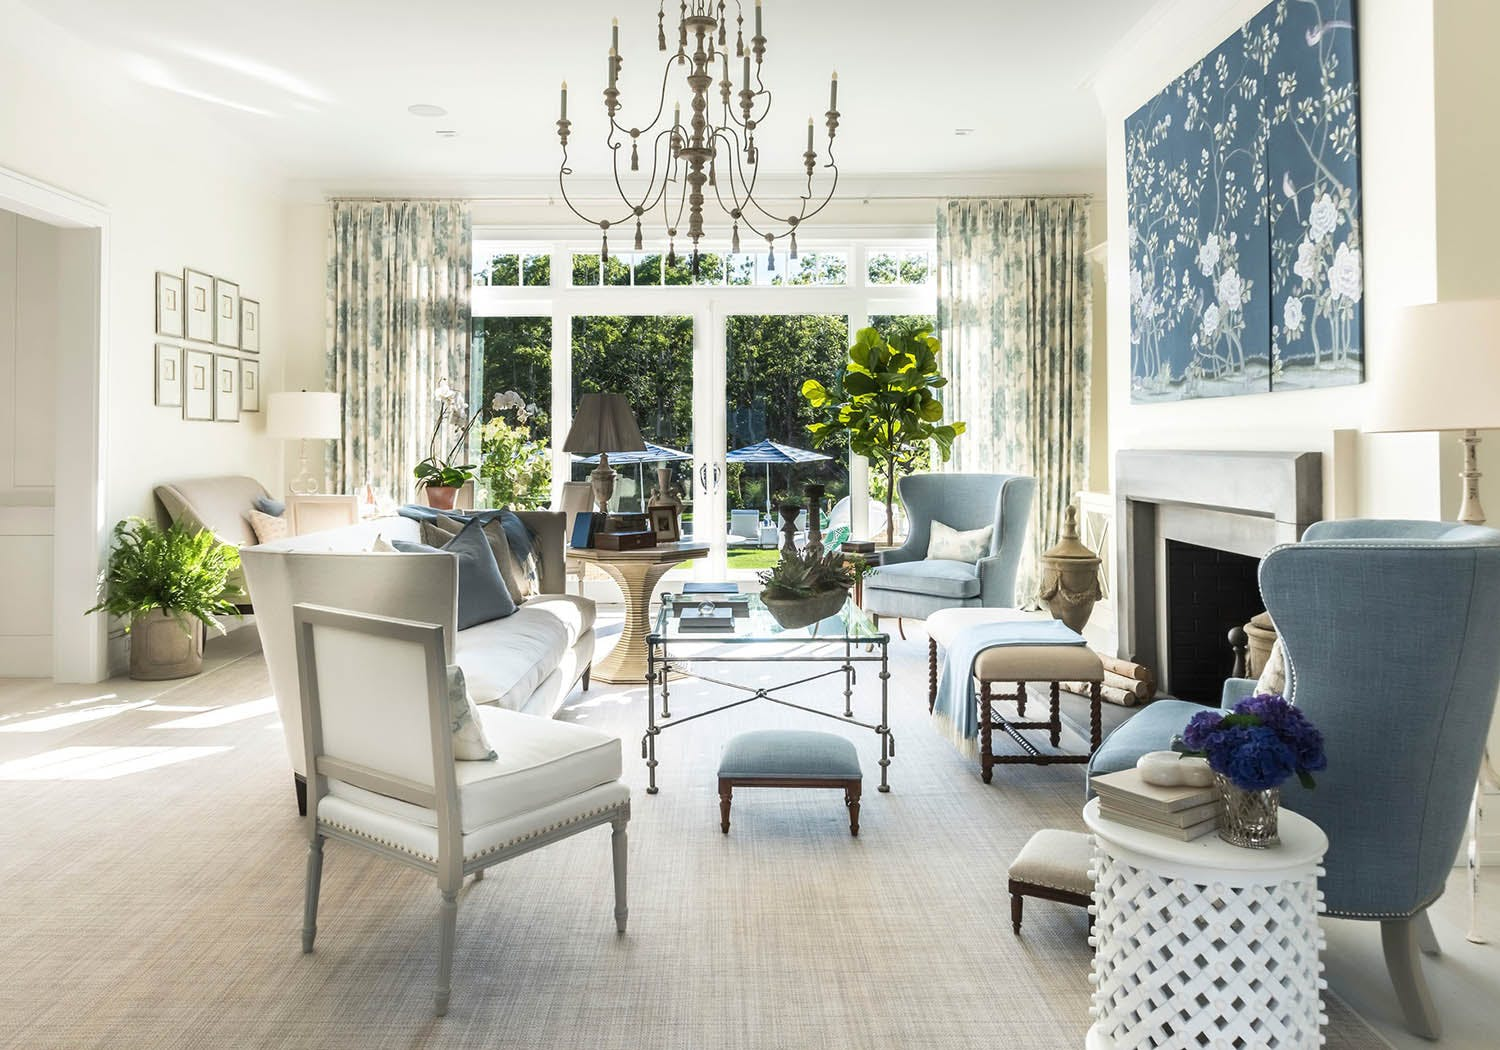 Your Guide To Traditional Interior Design June 2020 Our Guide To The Style